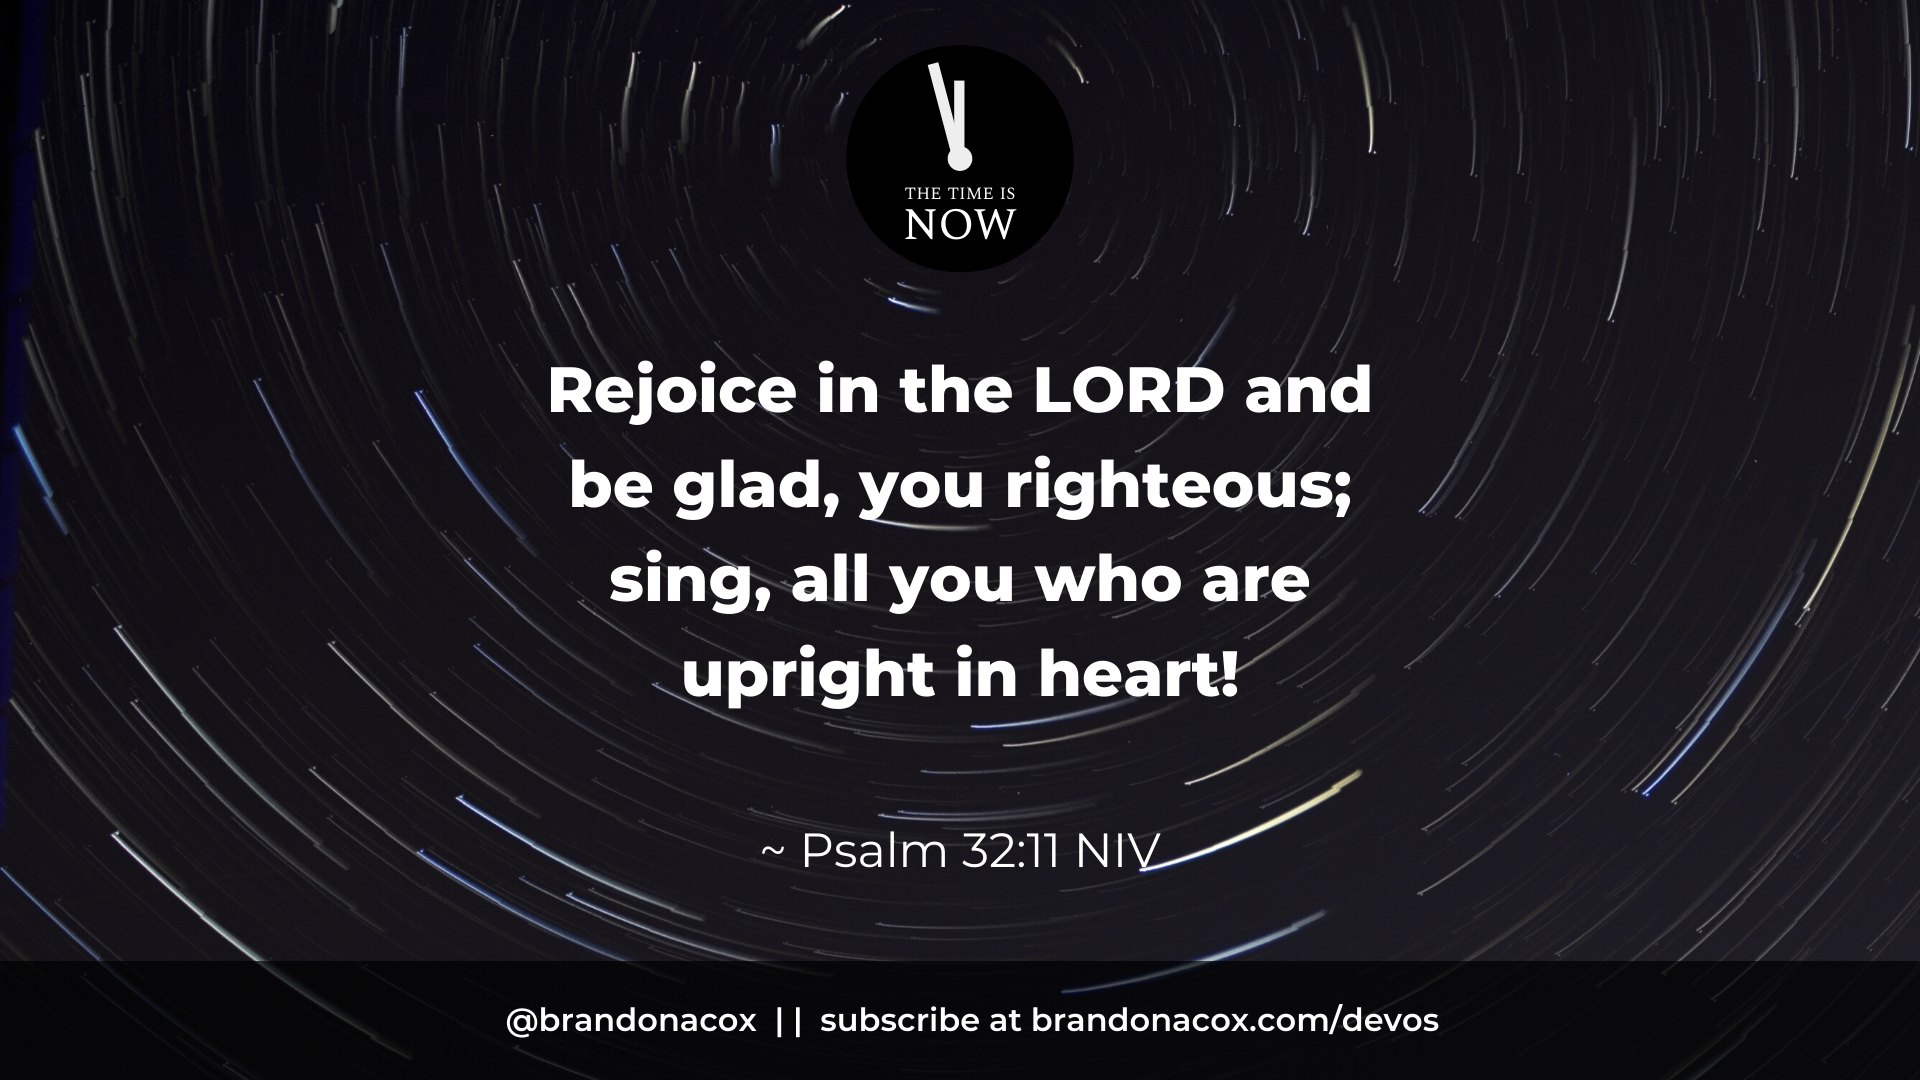 Moving Beyond Shame and Regret, Step 7: Rejoice in Your Relationship with God